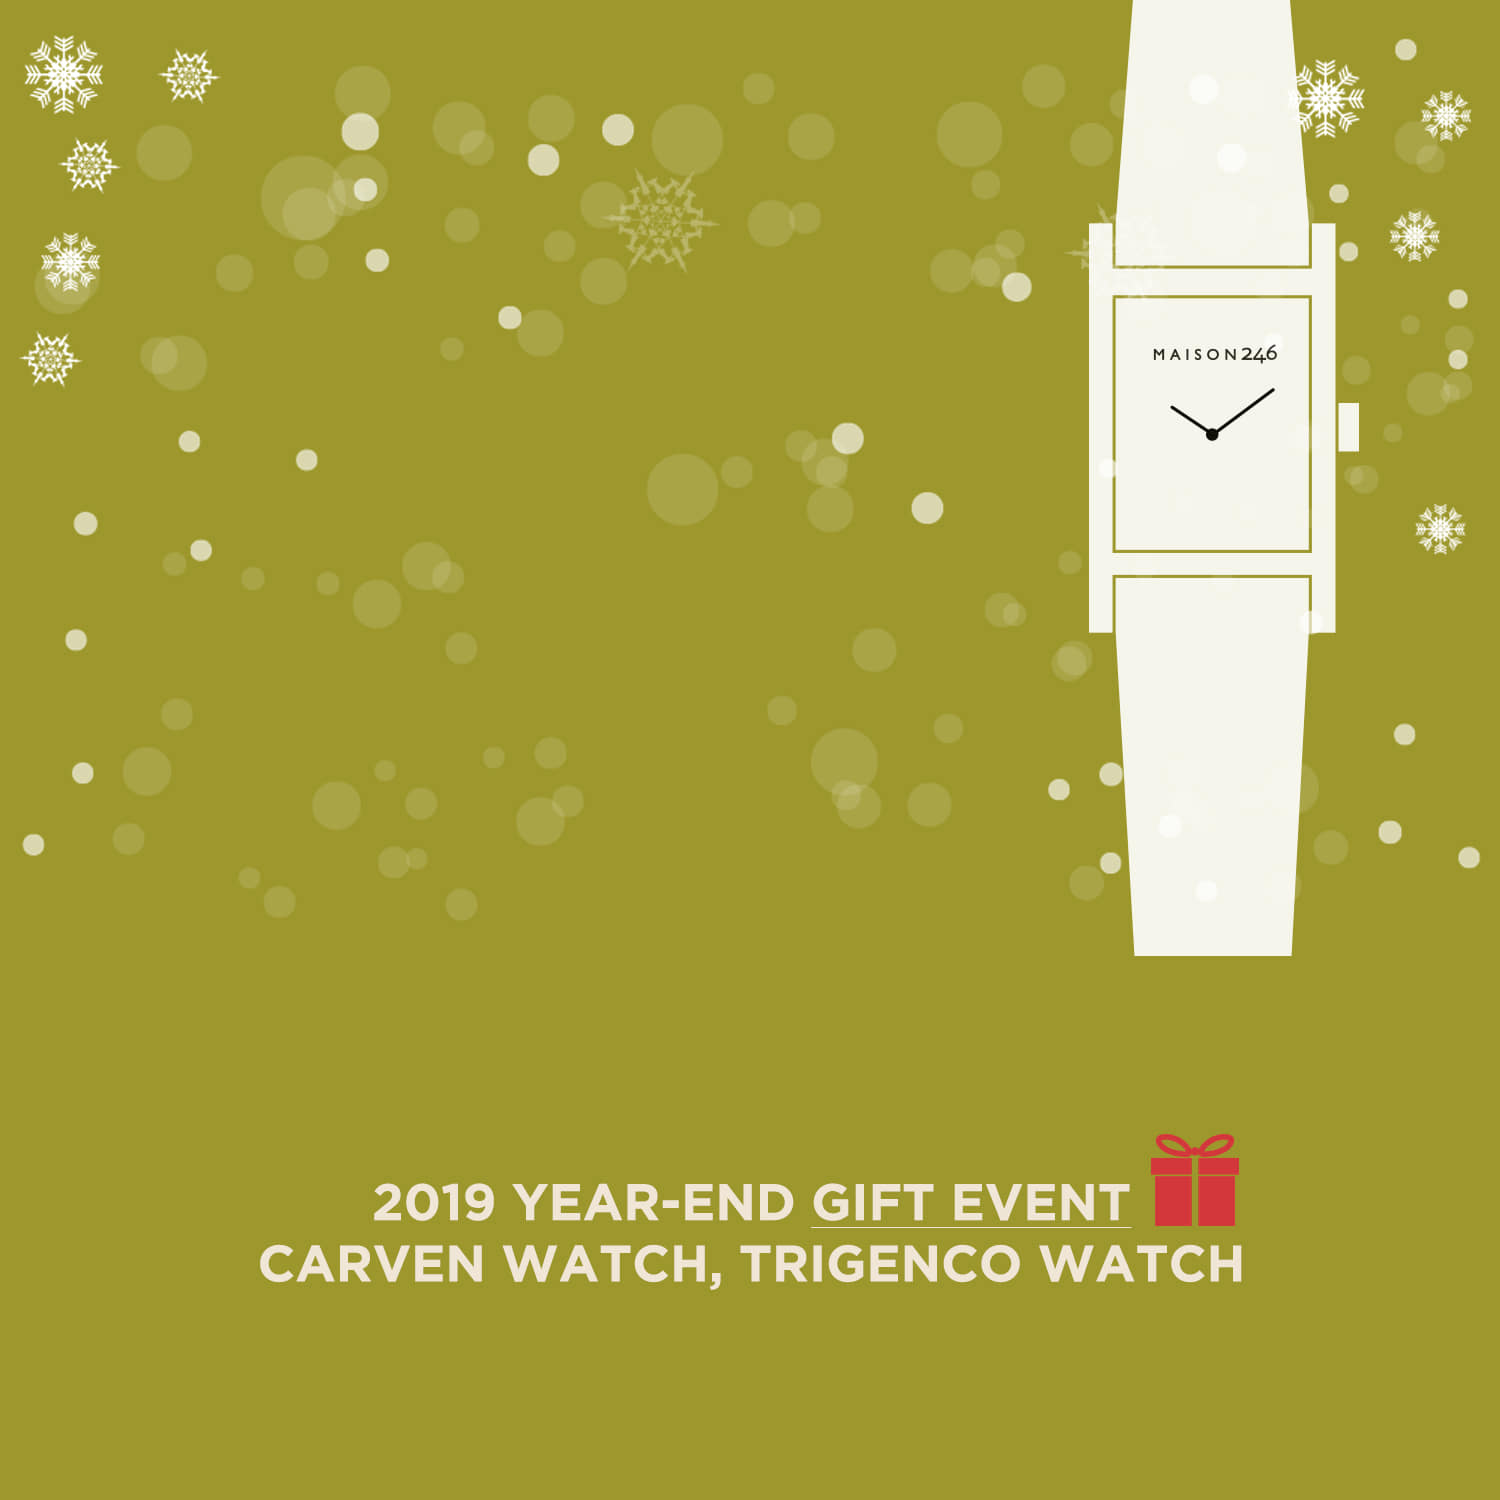 MAISON246,2019 year-end gift event [종료],자체브랜드